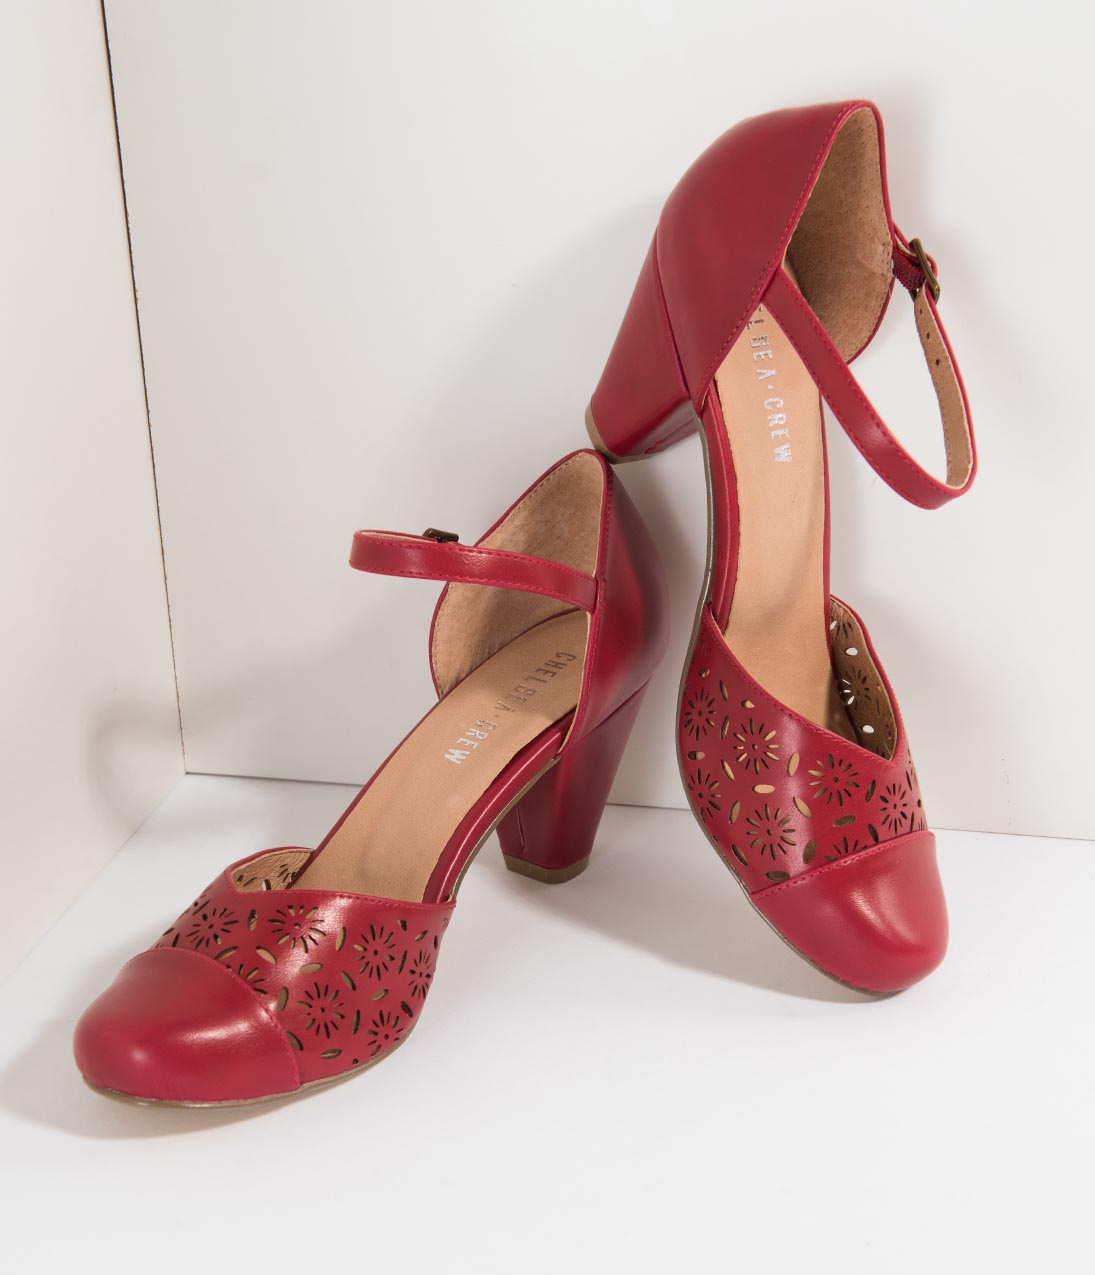 1950s Style Shoes | Heels, Flats, Saddle Shoes Chelsea Crew Red Cutout Leatherette DOrsey Morty Pumps $68.00 AT vintagedancer.com